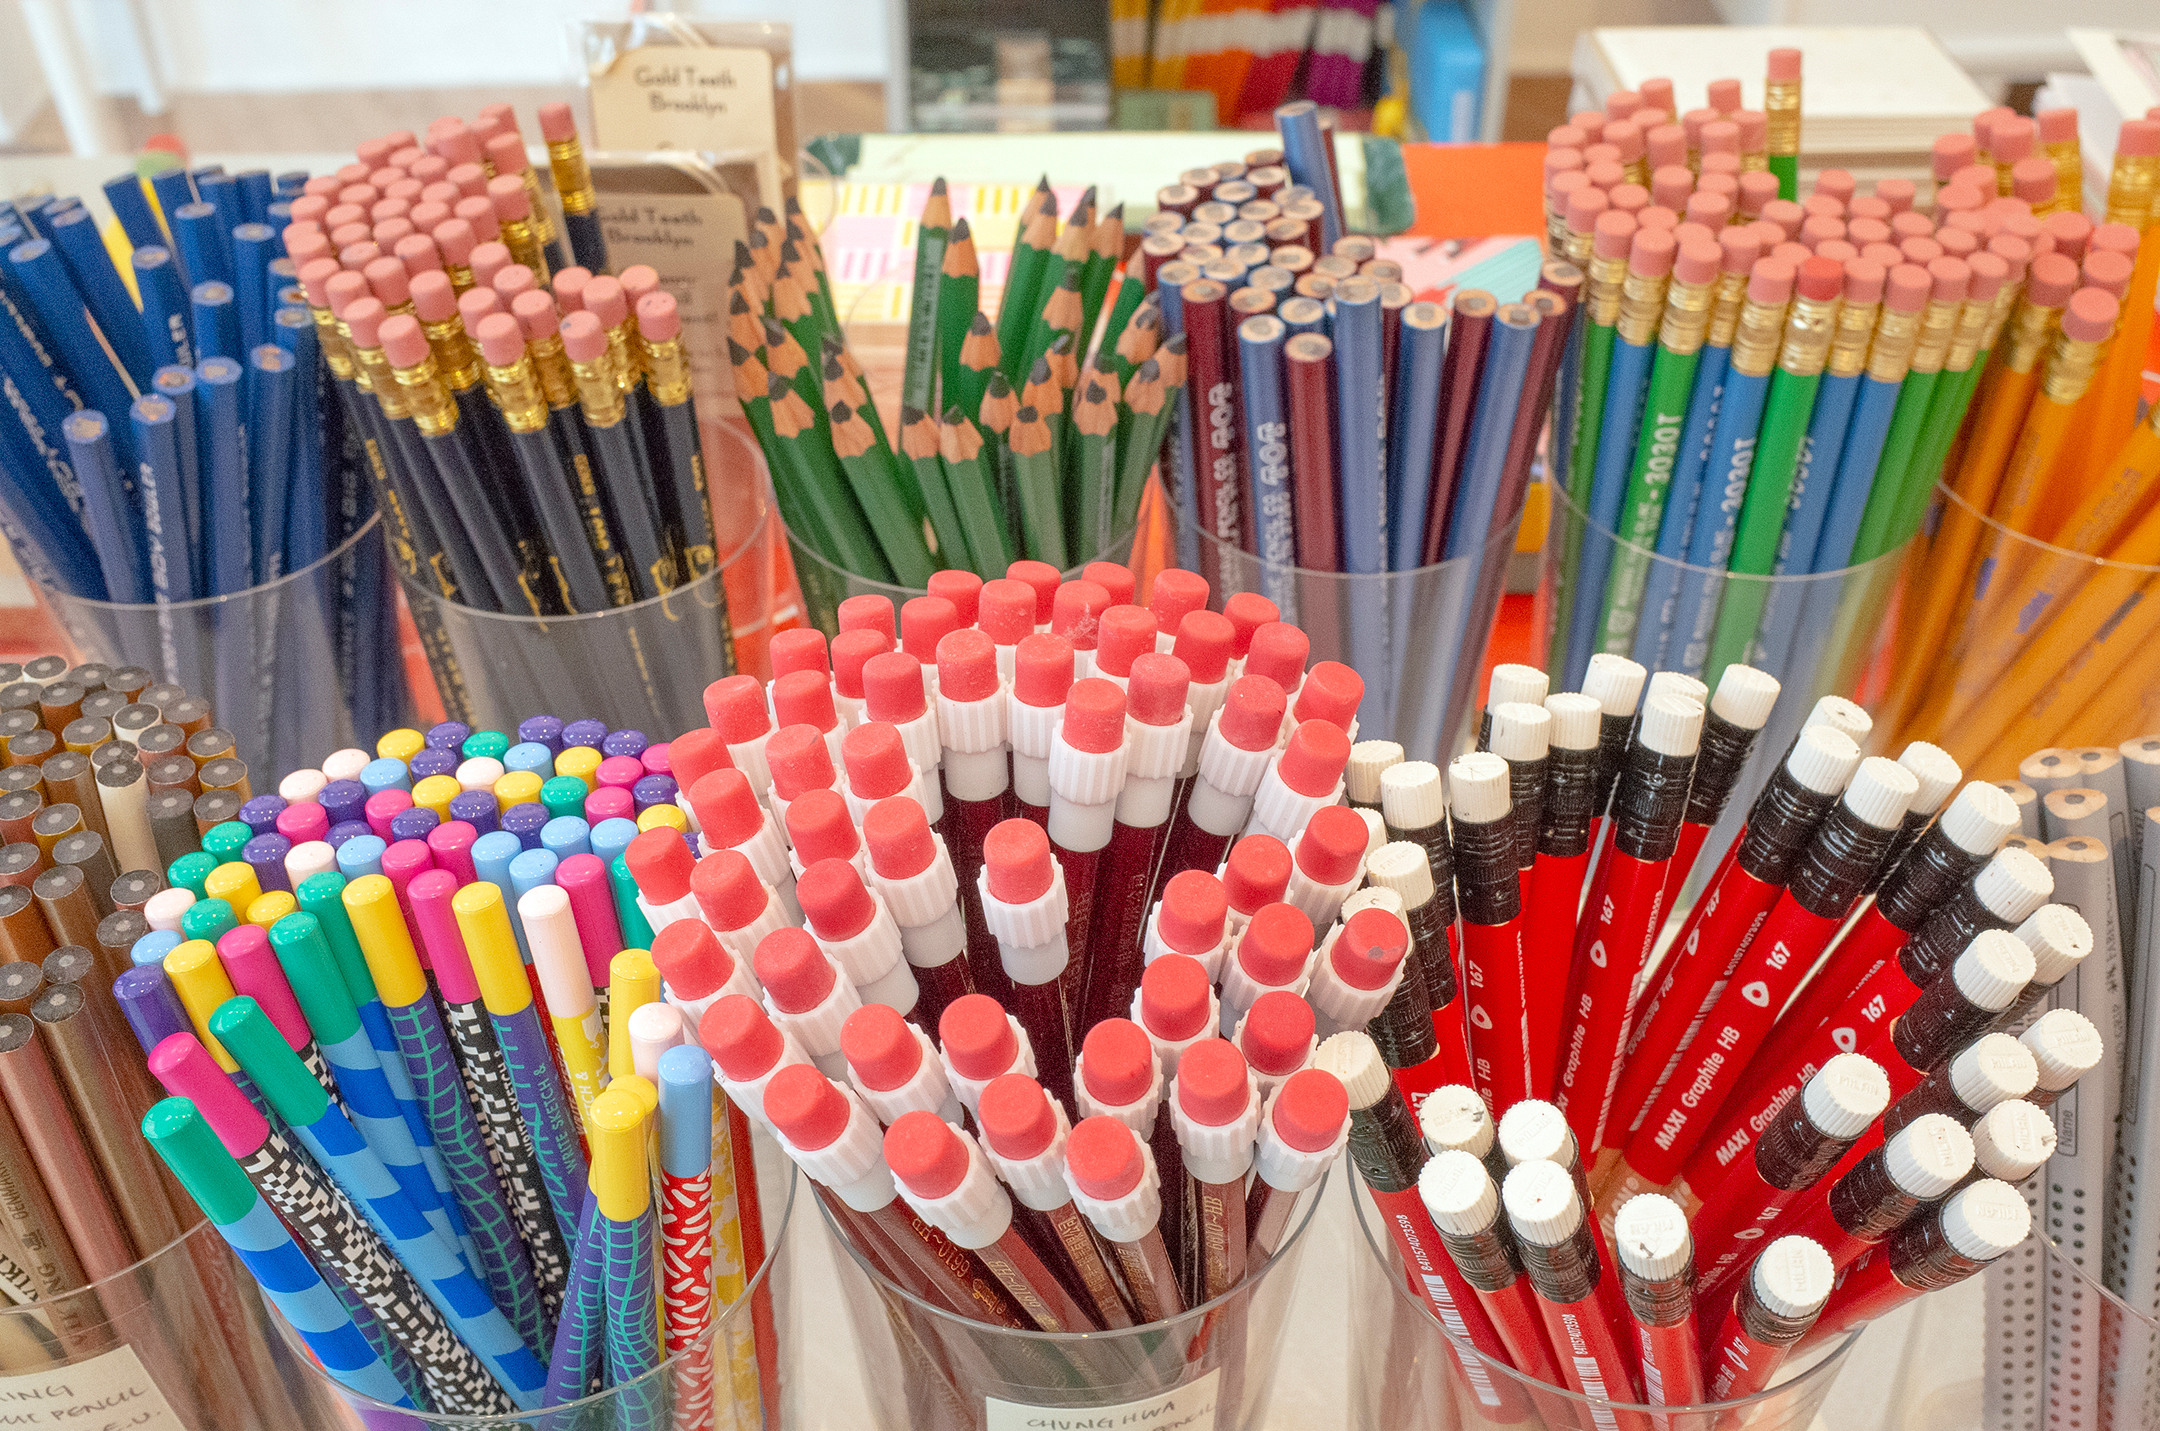 a photograph of ten different types of pencil, organized in cups with their eraser ends facing up